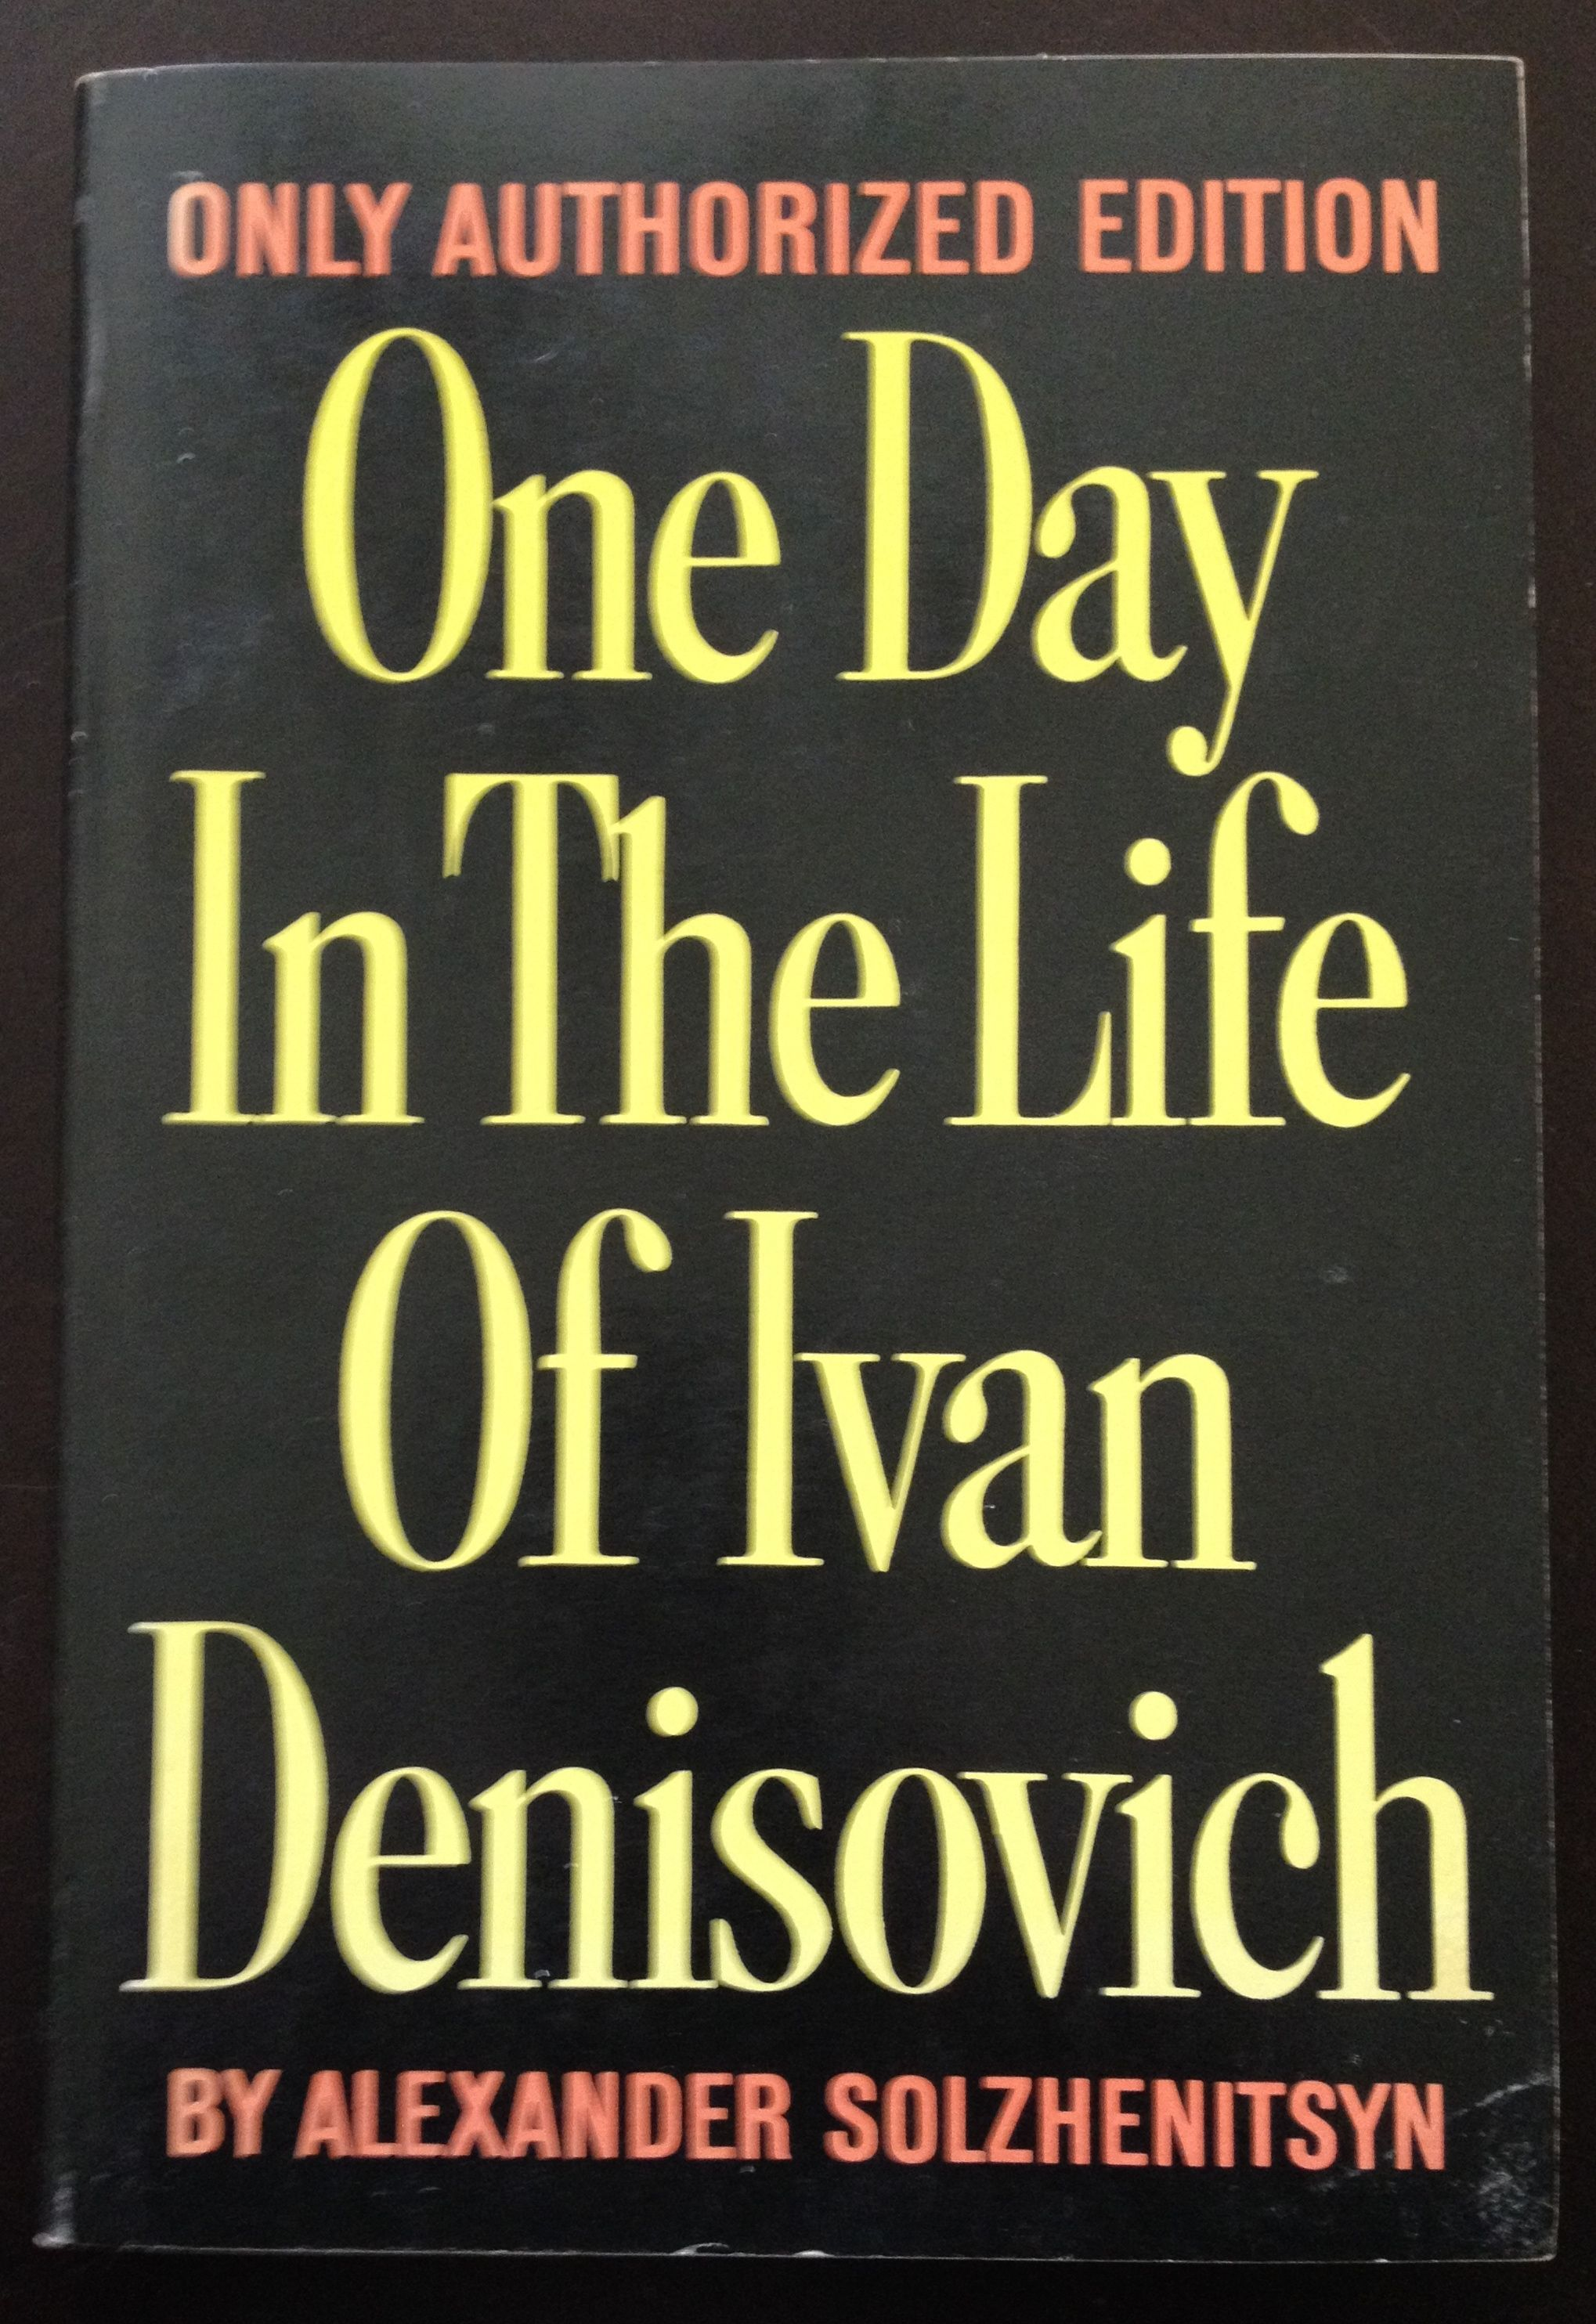 a summary on the book one day in the life of ivan denisovich by aleksandr solzhenitsyn Of ivan denisovich alexander solzhenitsyn table of contents plot overview   buy the print one day in the life of ivan denisovich sparknote on bncom.